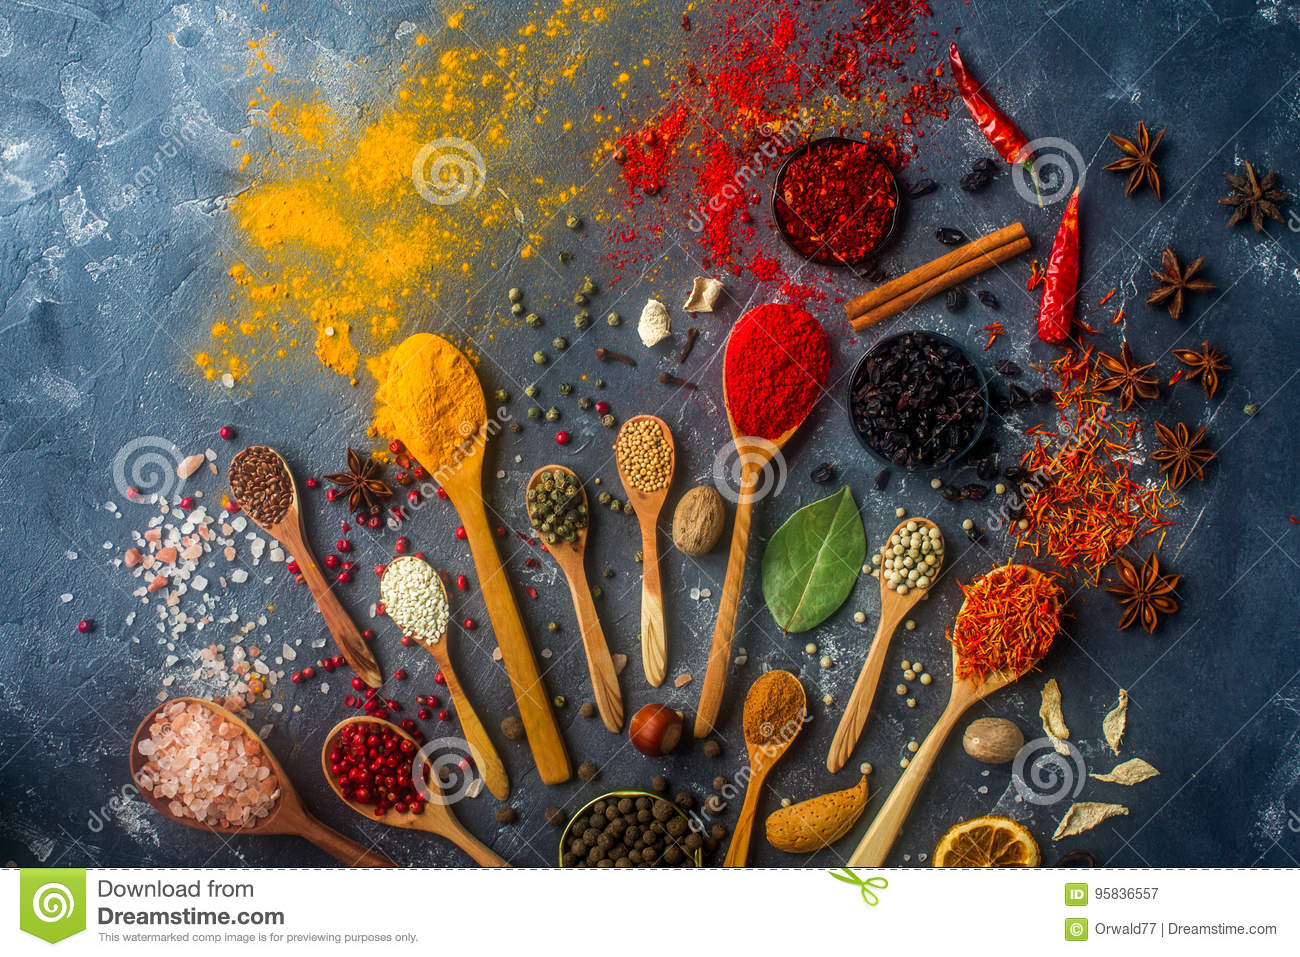 Colorful spices in wooden spoons, seeds, herbs and nuts on dark stone table.